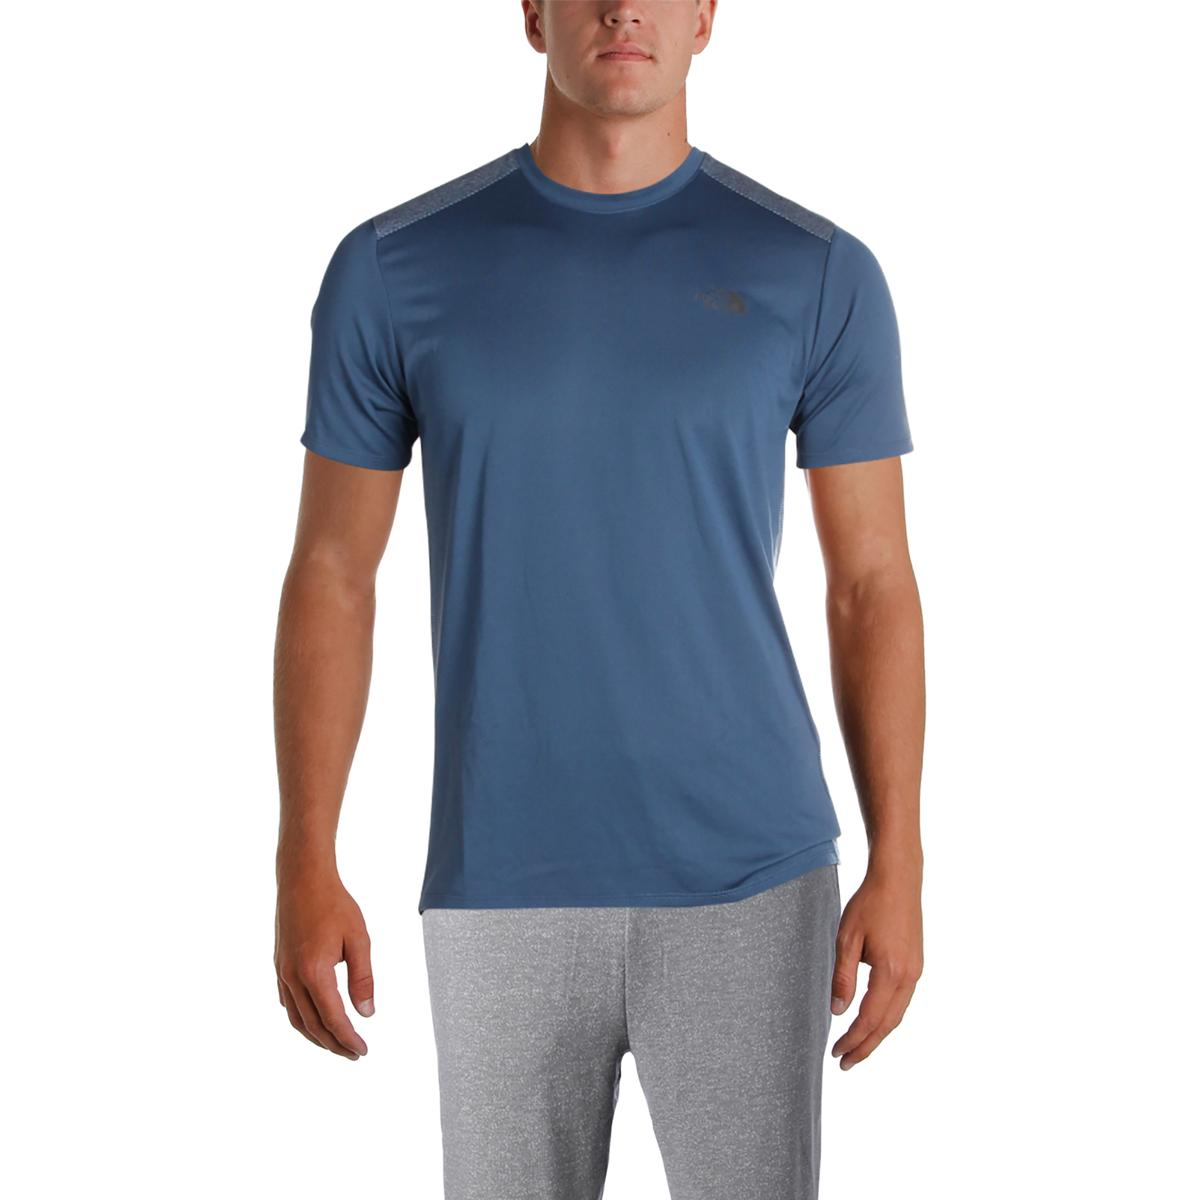 Details about The North Face Mens Versitas Navy Fitness Shaping T-Shirt  Athletic M BHFO 7342 91399bb0b891